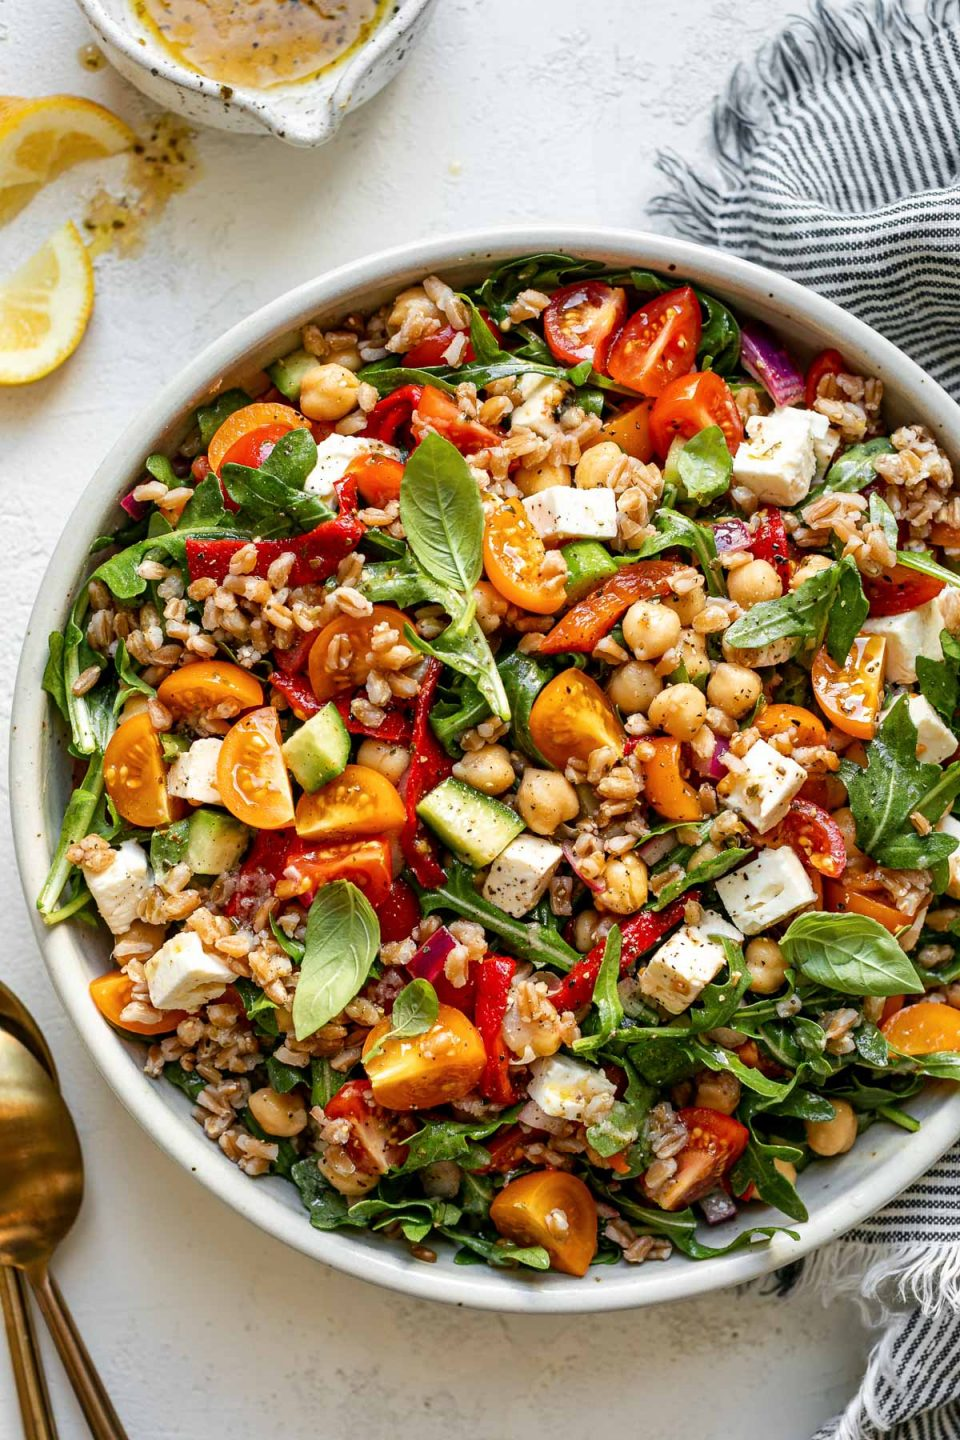 Greek farro salad in ceramic serving dish atop a white surface. The farro salad is tossed & topped with fresh basil leaves. The bowl is surrounded by a striped gray linen napkin, serving spoons, lemon wedges.